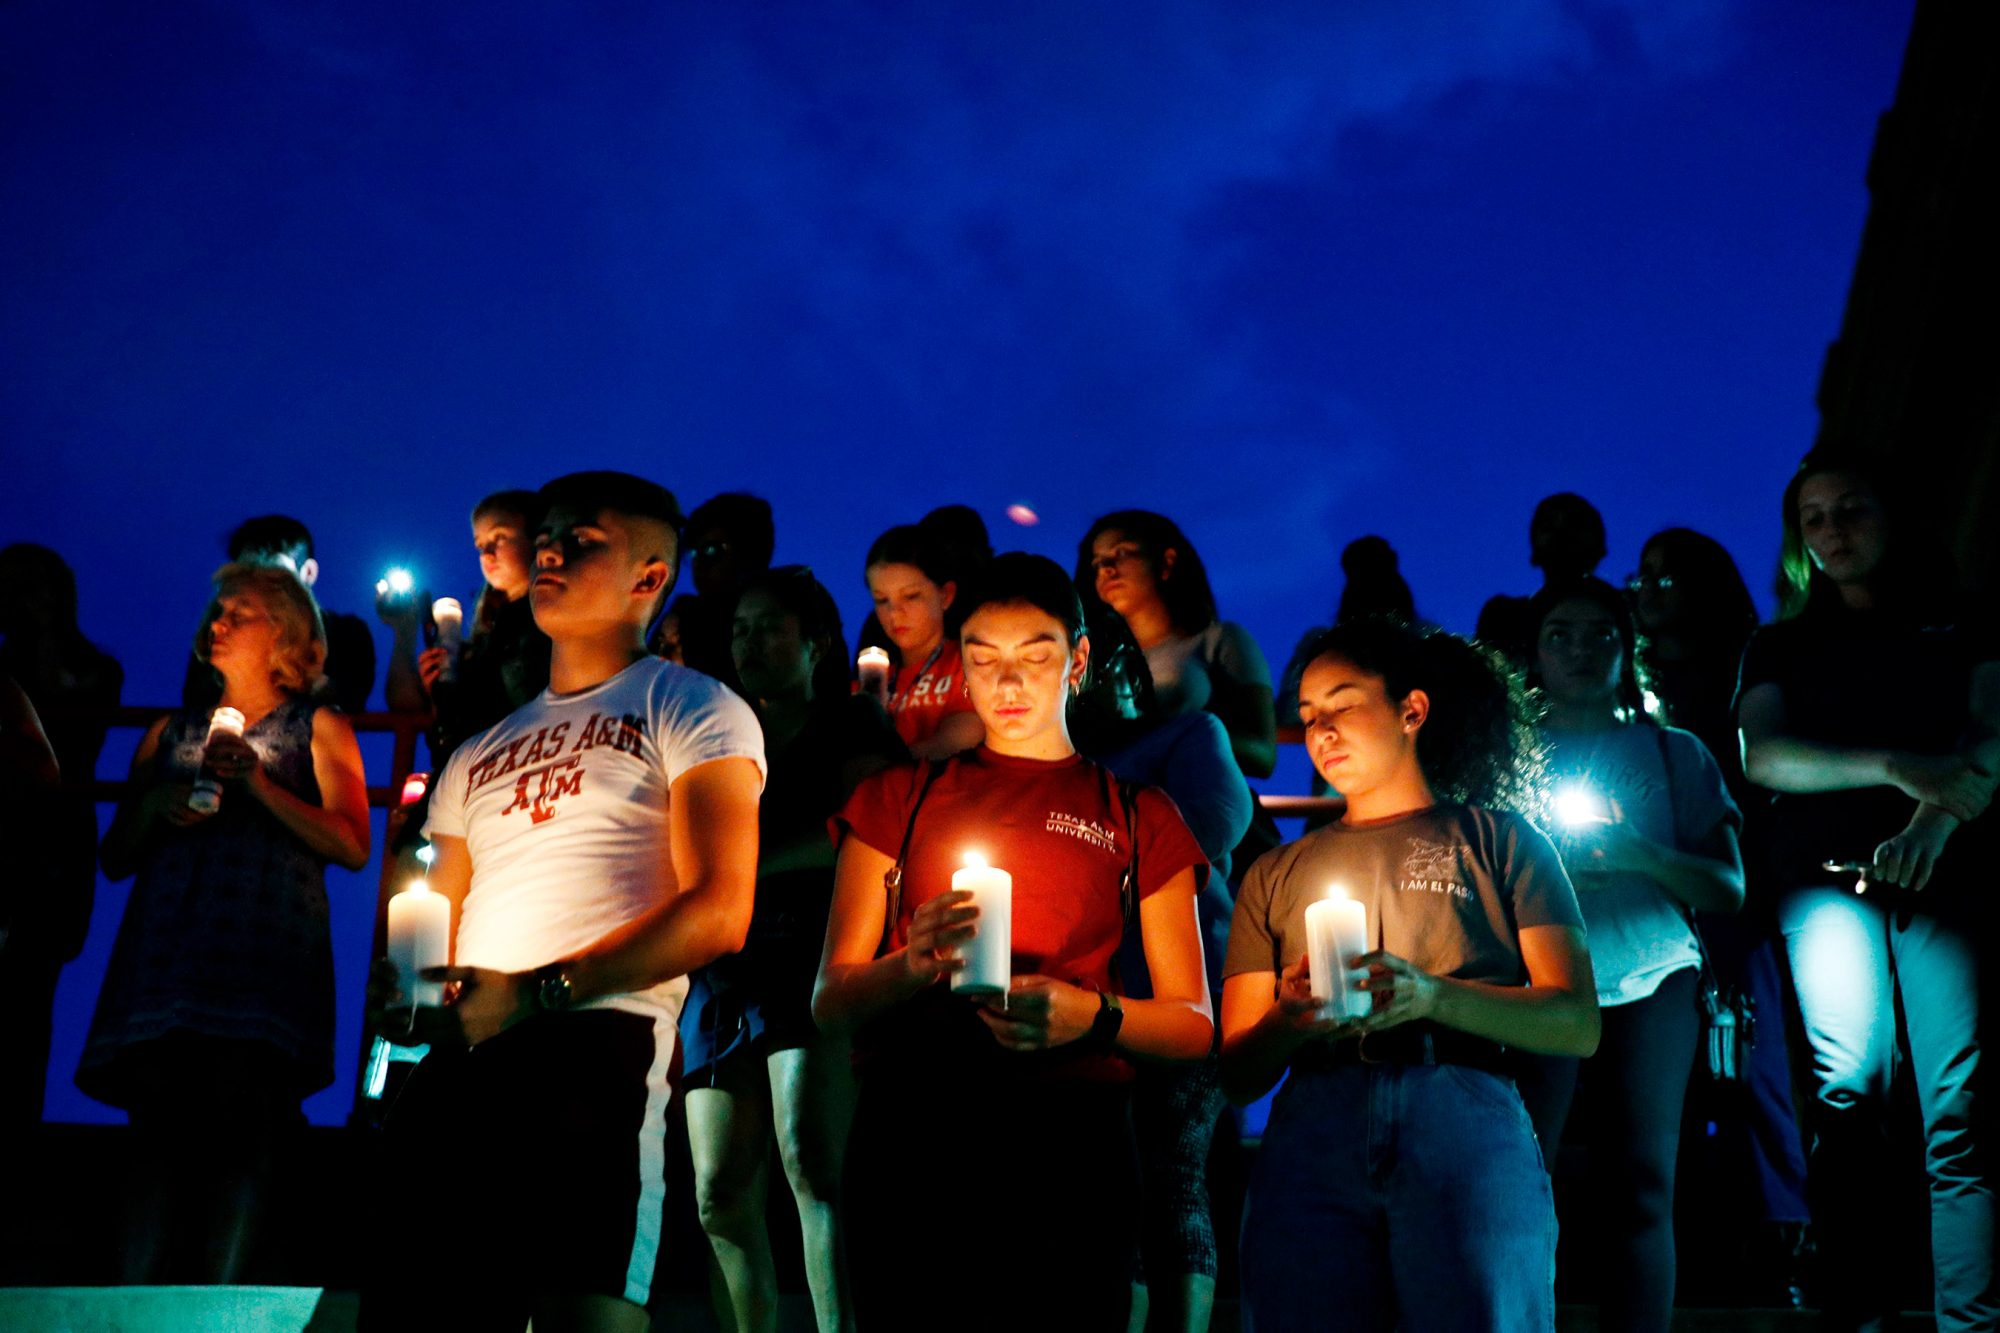 From left, Samuel Lerma, Arzetta Hodges and Desiree Quintanar attend a vigil for victims of the deadly shooting that occurred earlier in the day at a shopping center, in El Paso, Texas Texas Mall Shooting, El Paso, USA